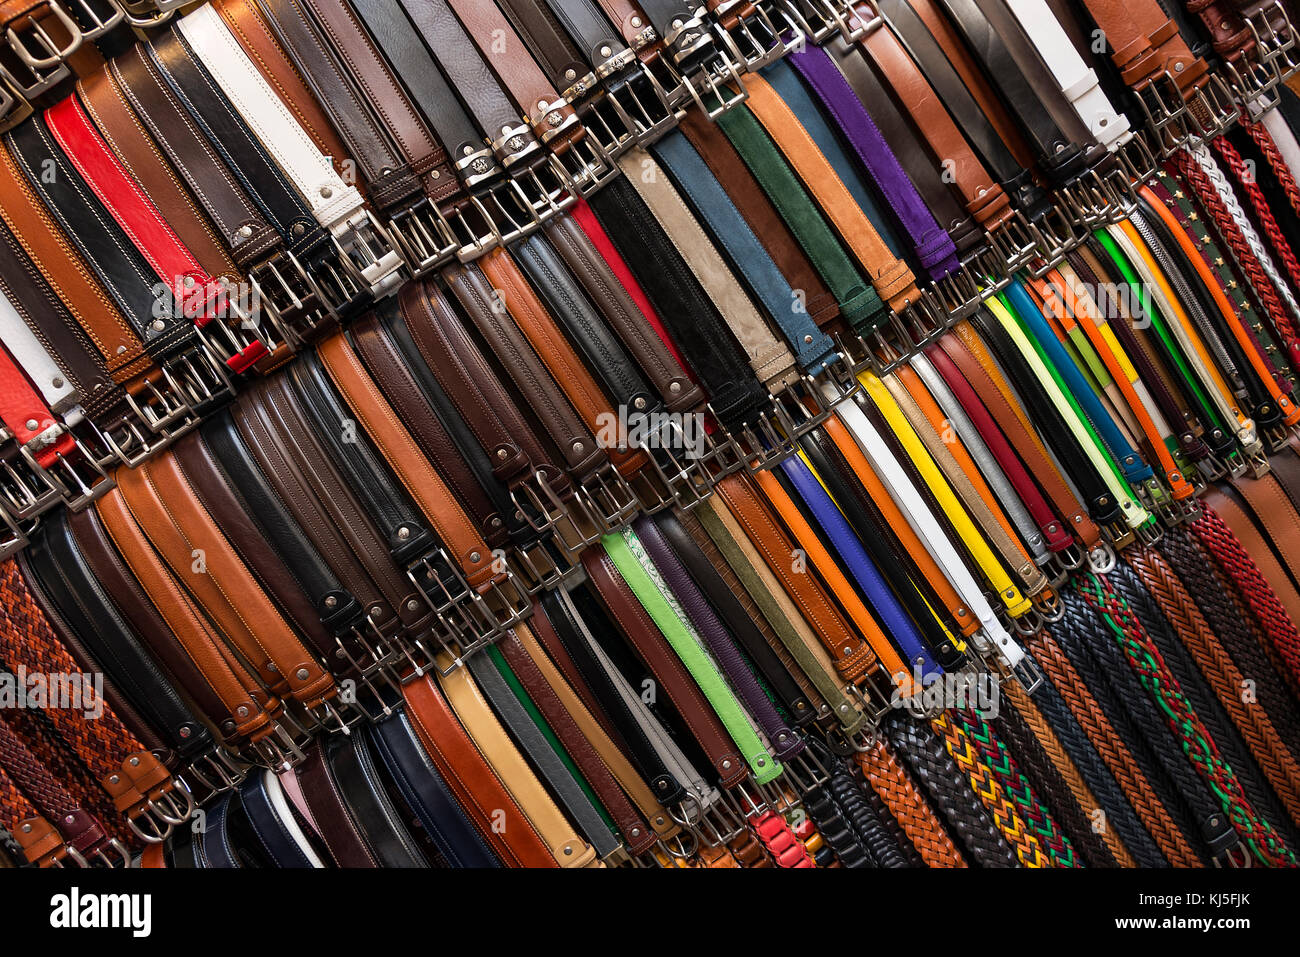 Italian leather belts on display, Florence, Italy. - Stock Image